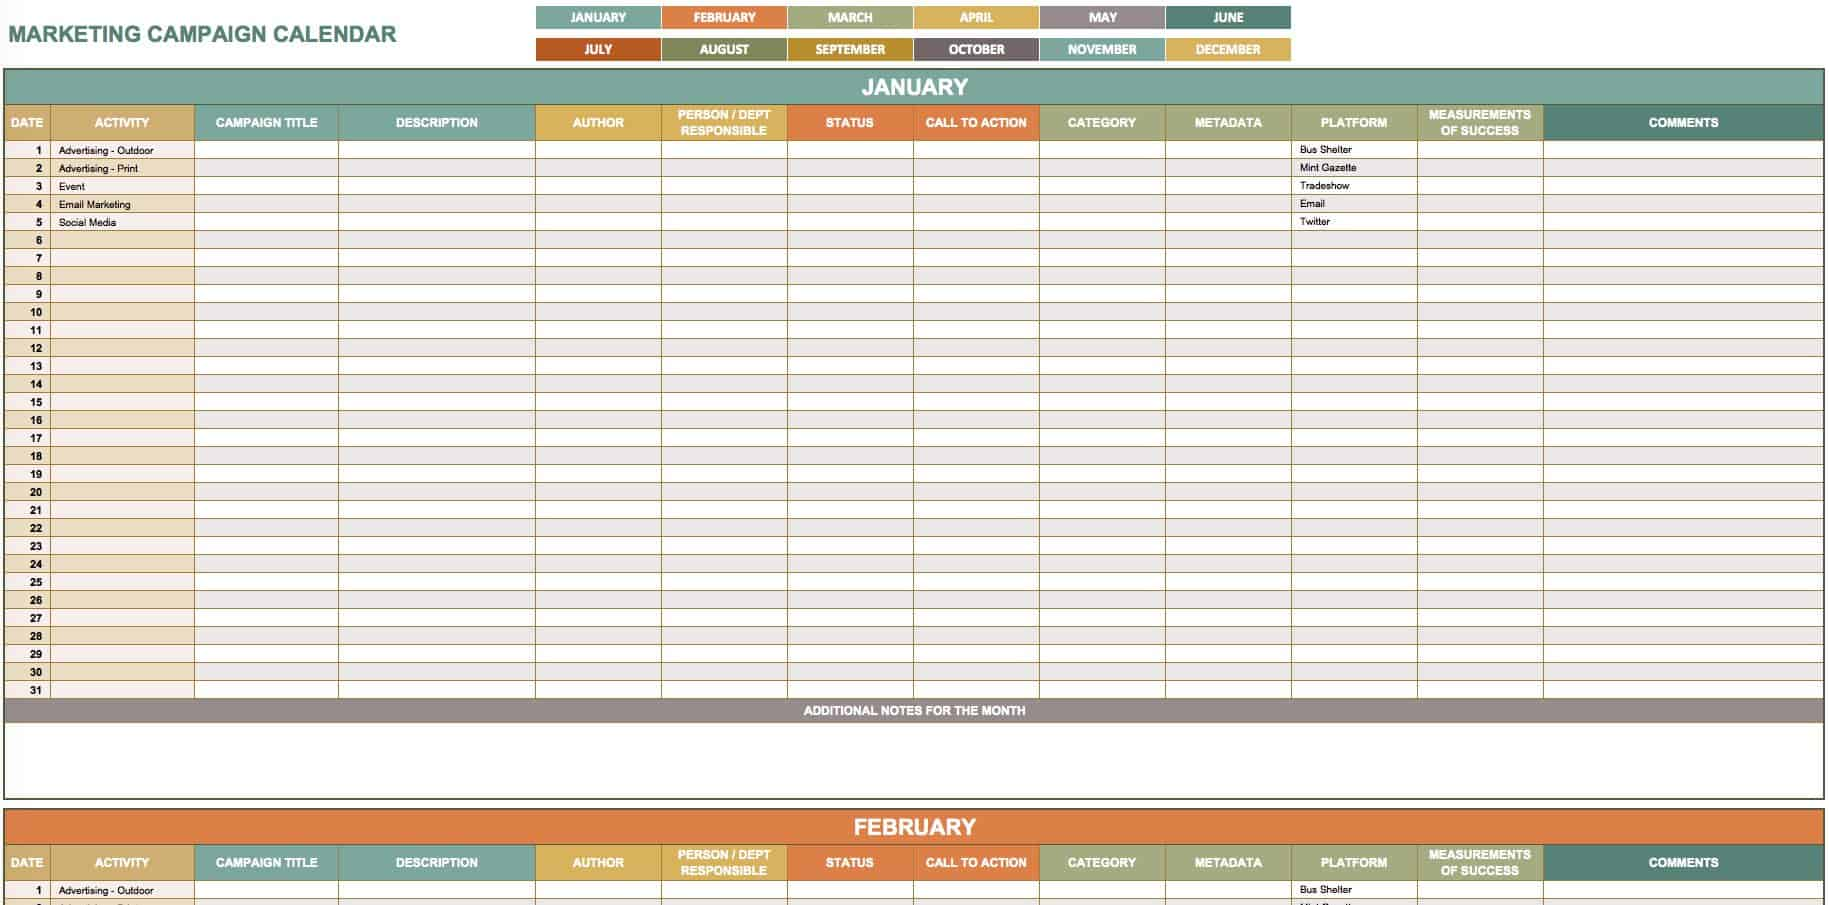 Free Marketing Calendar Templates For Excel Smartsheet - Marketing campaign schedule template